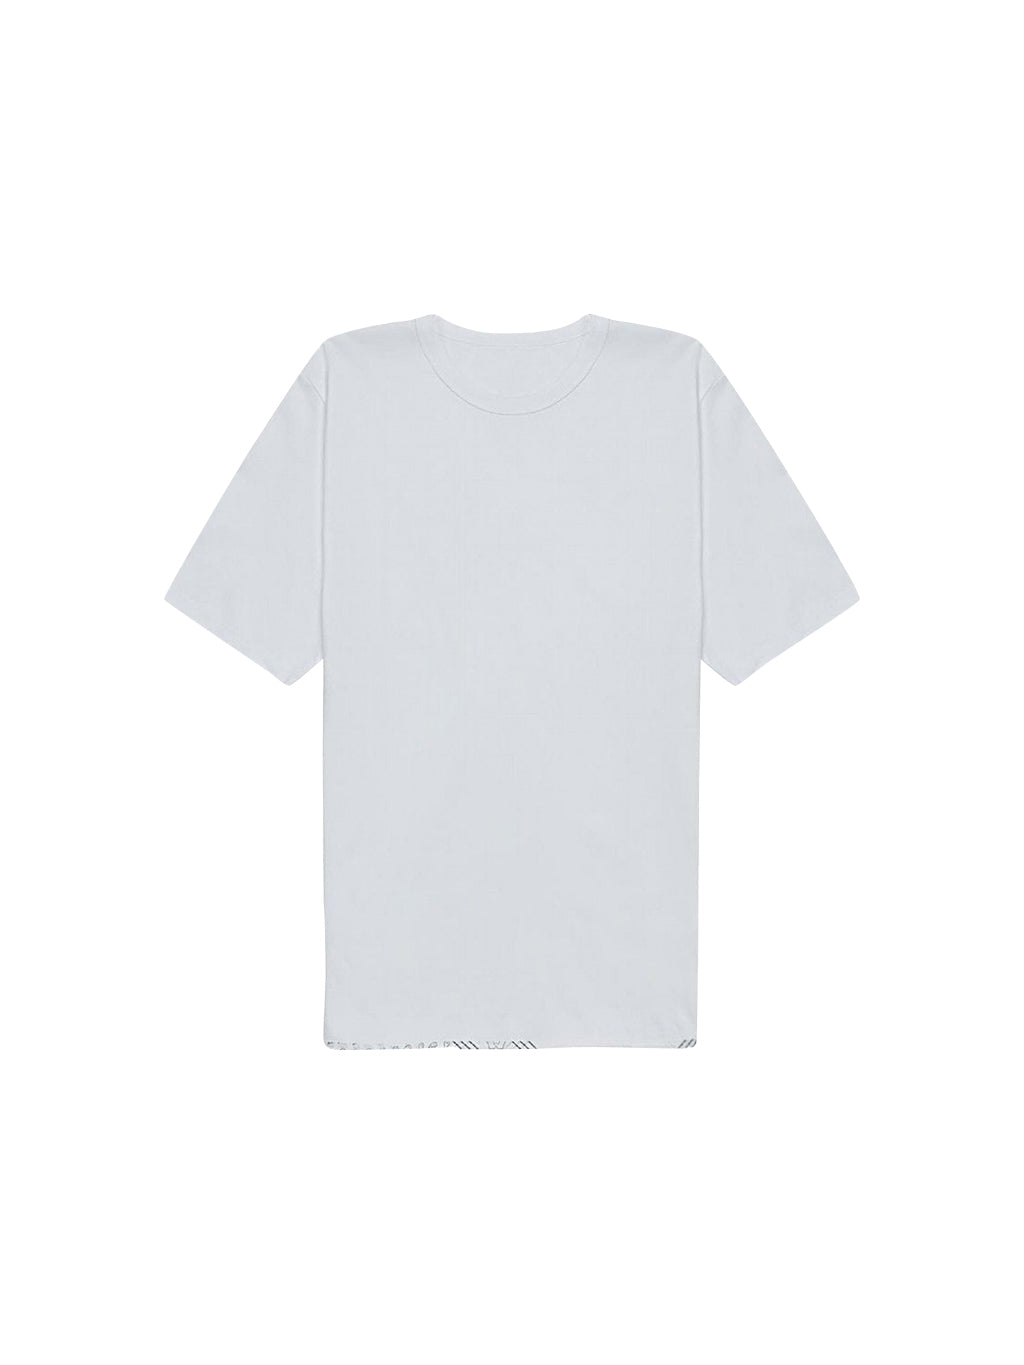 White Sublig Jumbo T-shirt